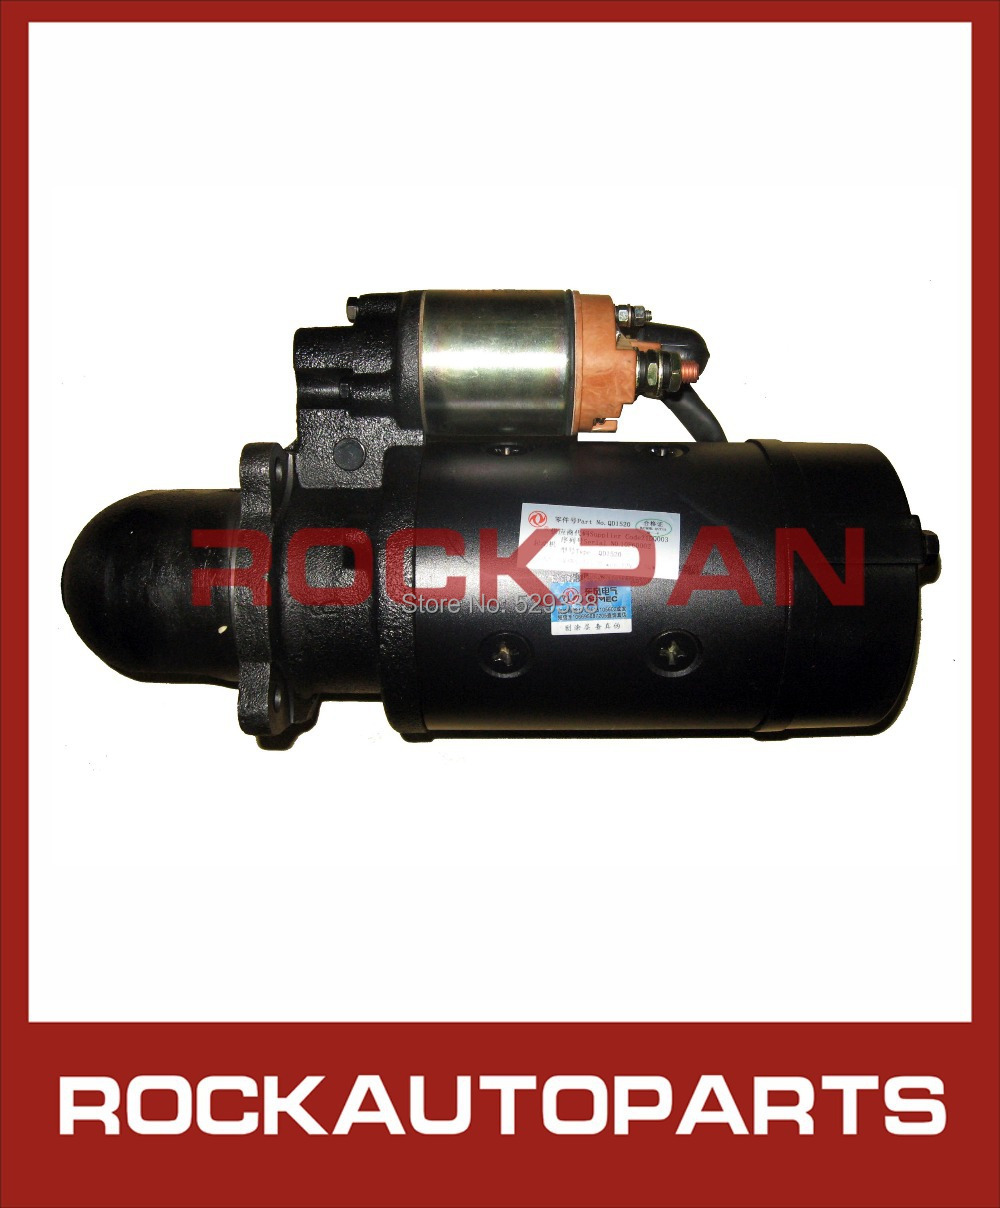 FOR CUMMINS ENGINE 4BT AUTO STARTER MOTOR QD1520 12V 4.5KW FOR DONGFENG TRUCK(China (Mainland))